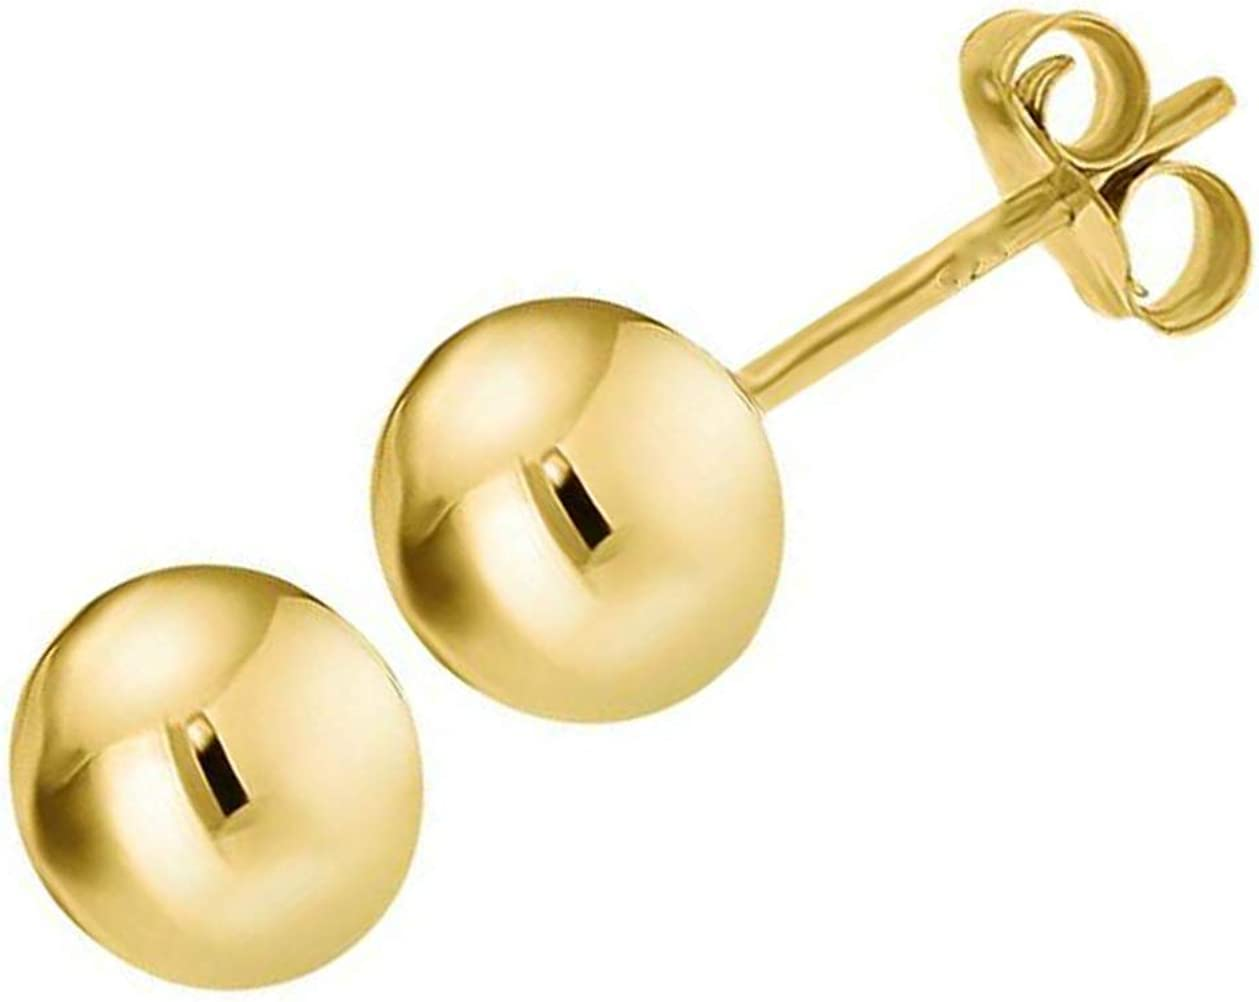 Real Max 45% OFF Gold 24ct Filled Ball Max 45% OFF Stud Than with 20x More Earrings